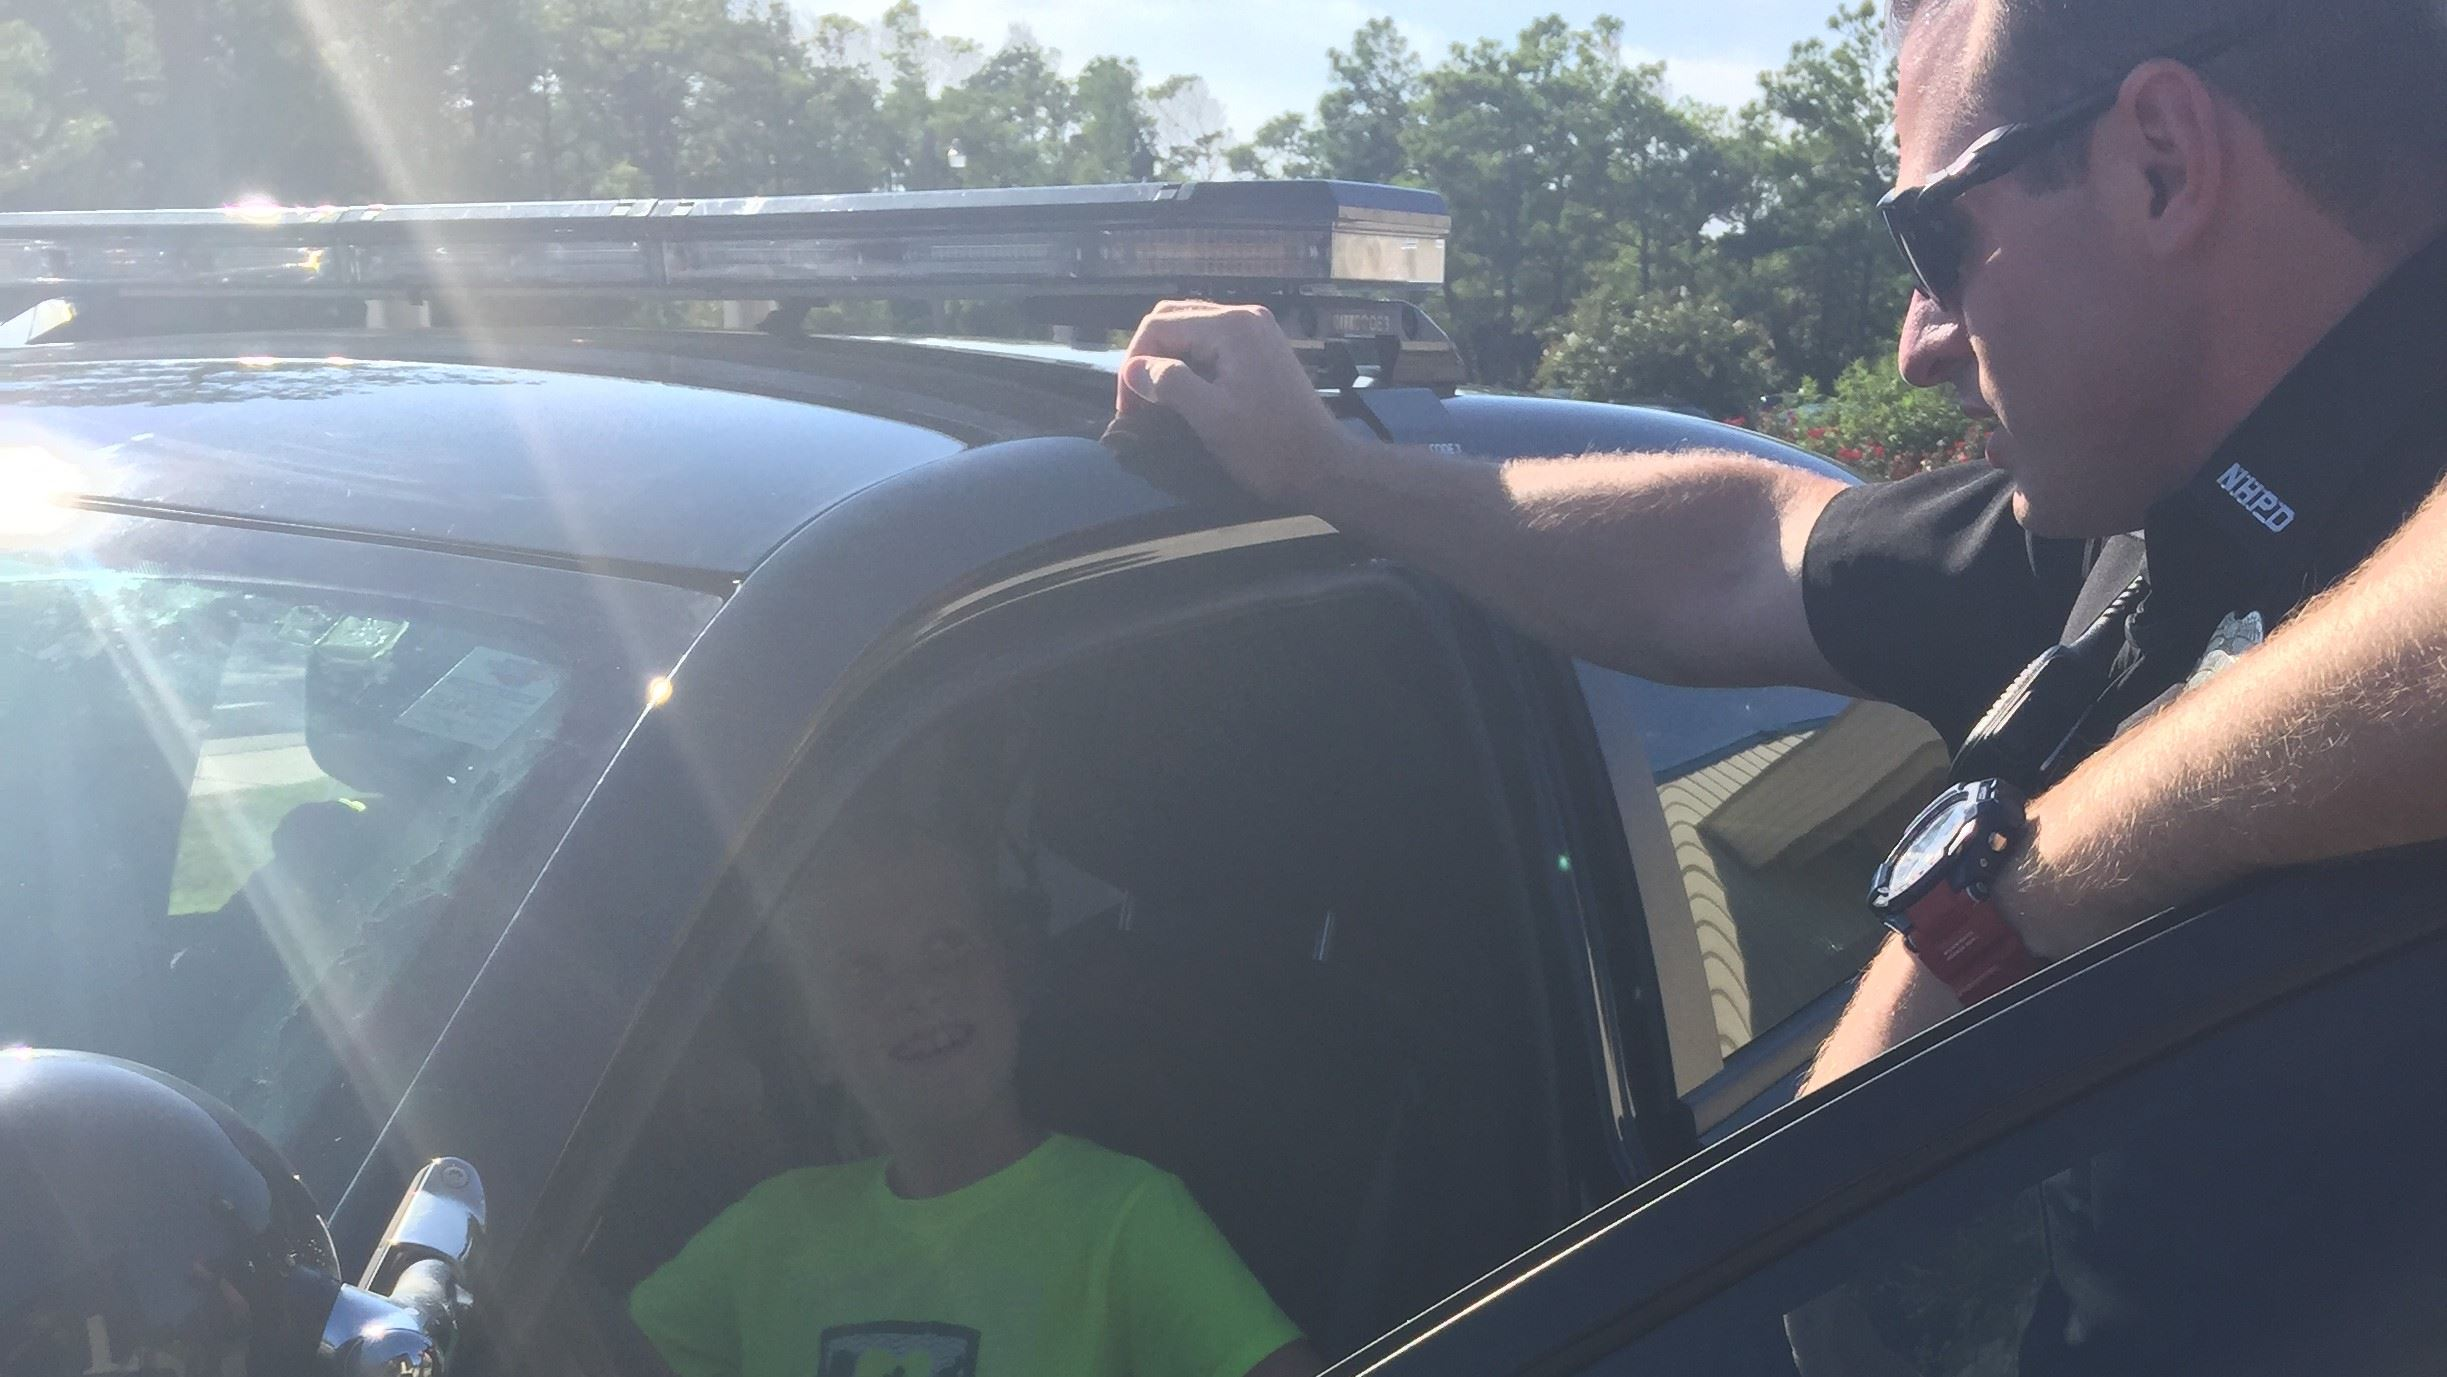 Officer talking to kid in car